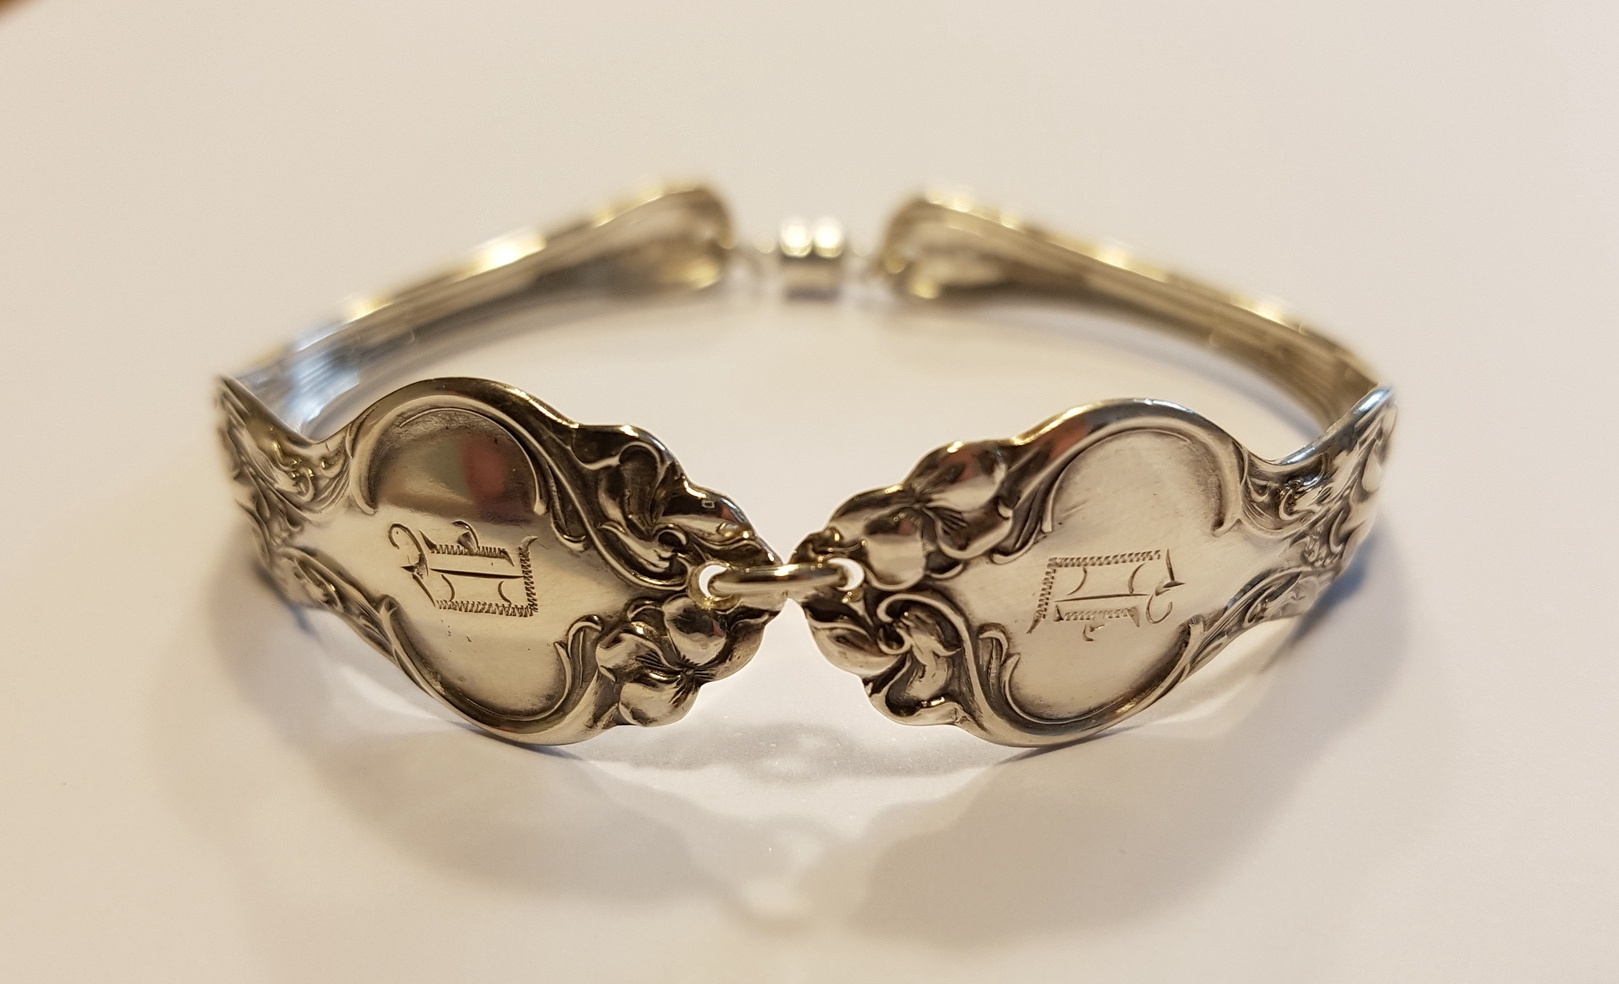 Vintage Sterling silver Wallace spoon bracelet engraved 'D'